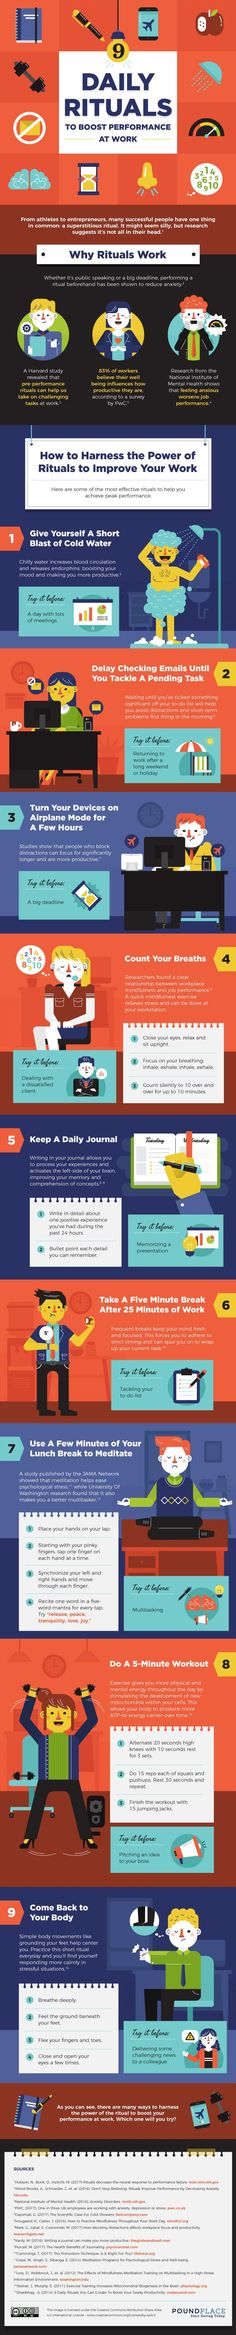 9 Daily Rituals To Boost Performance At Work - #infographic